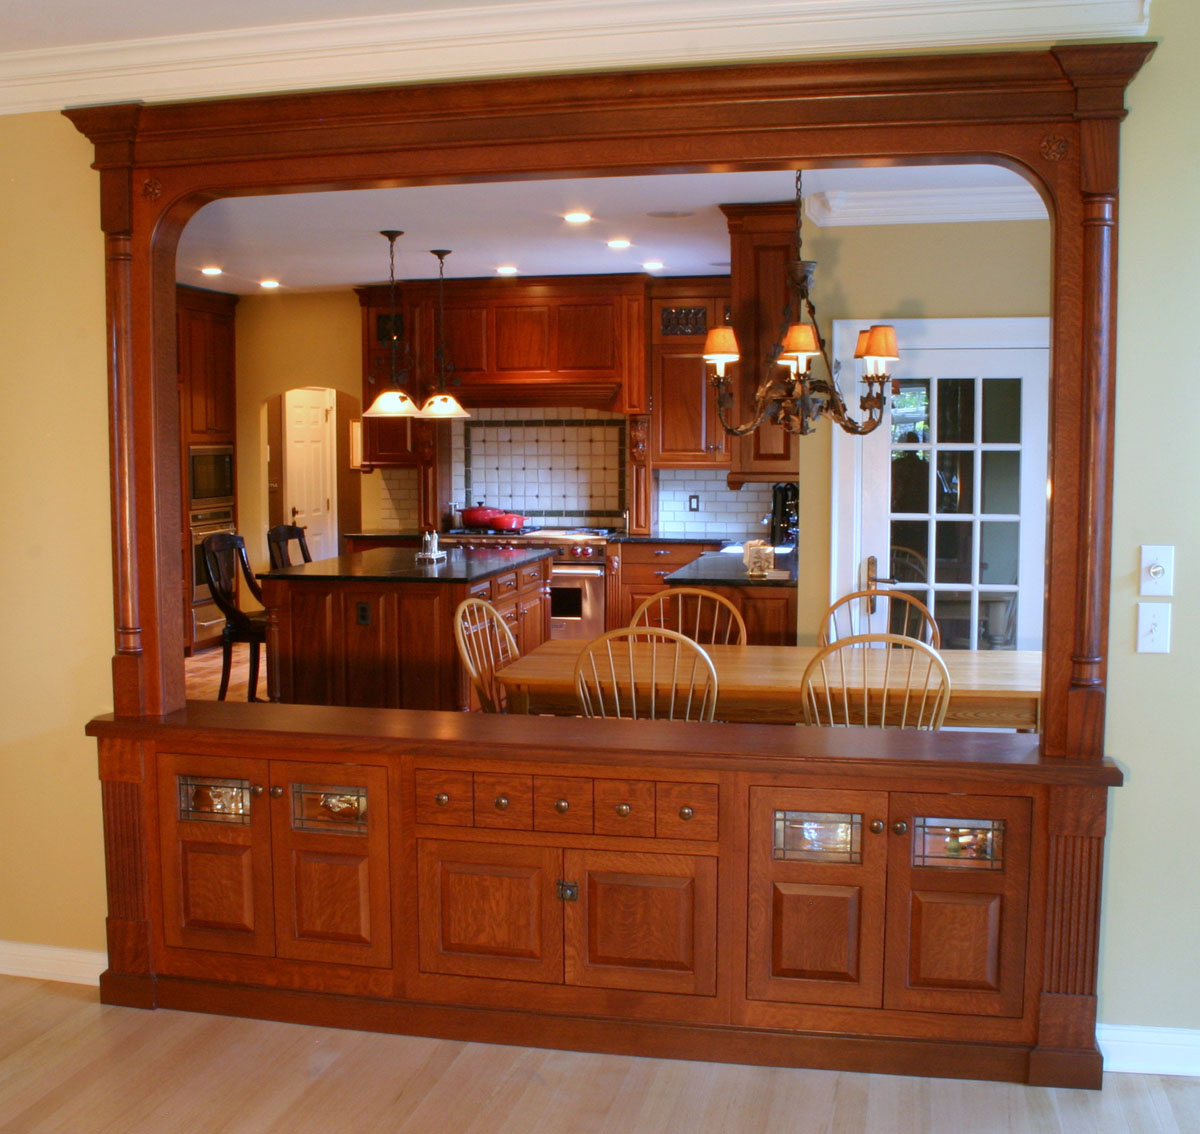 Woodfield quarter-sawn white oak pass-through cabinetry